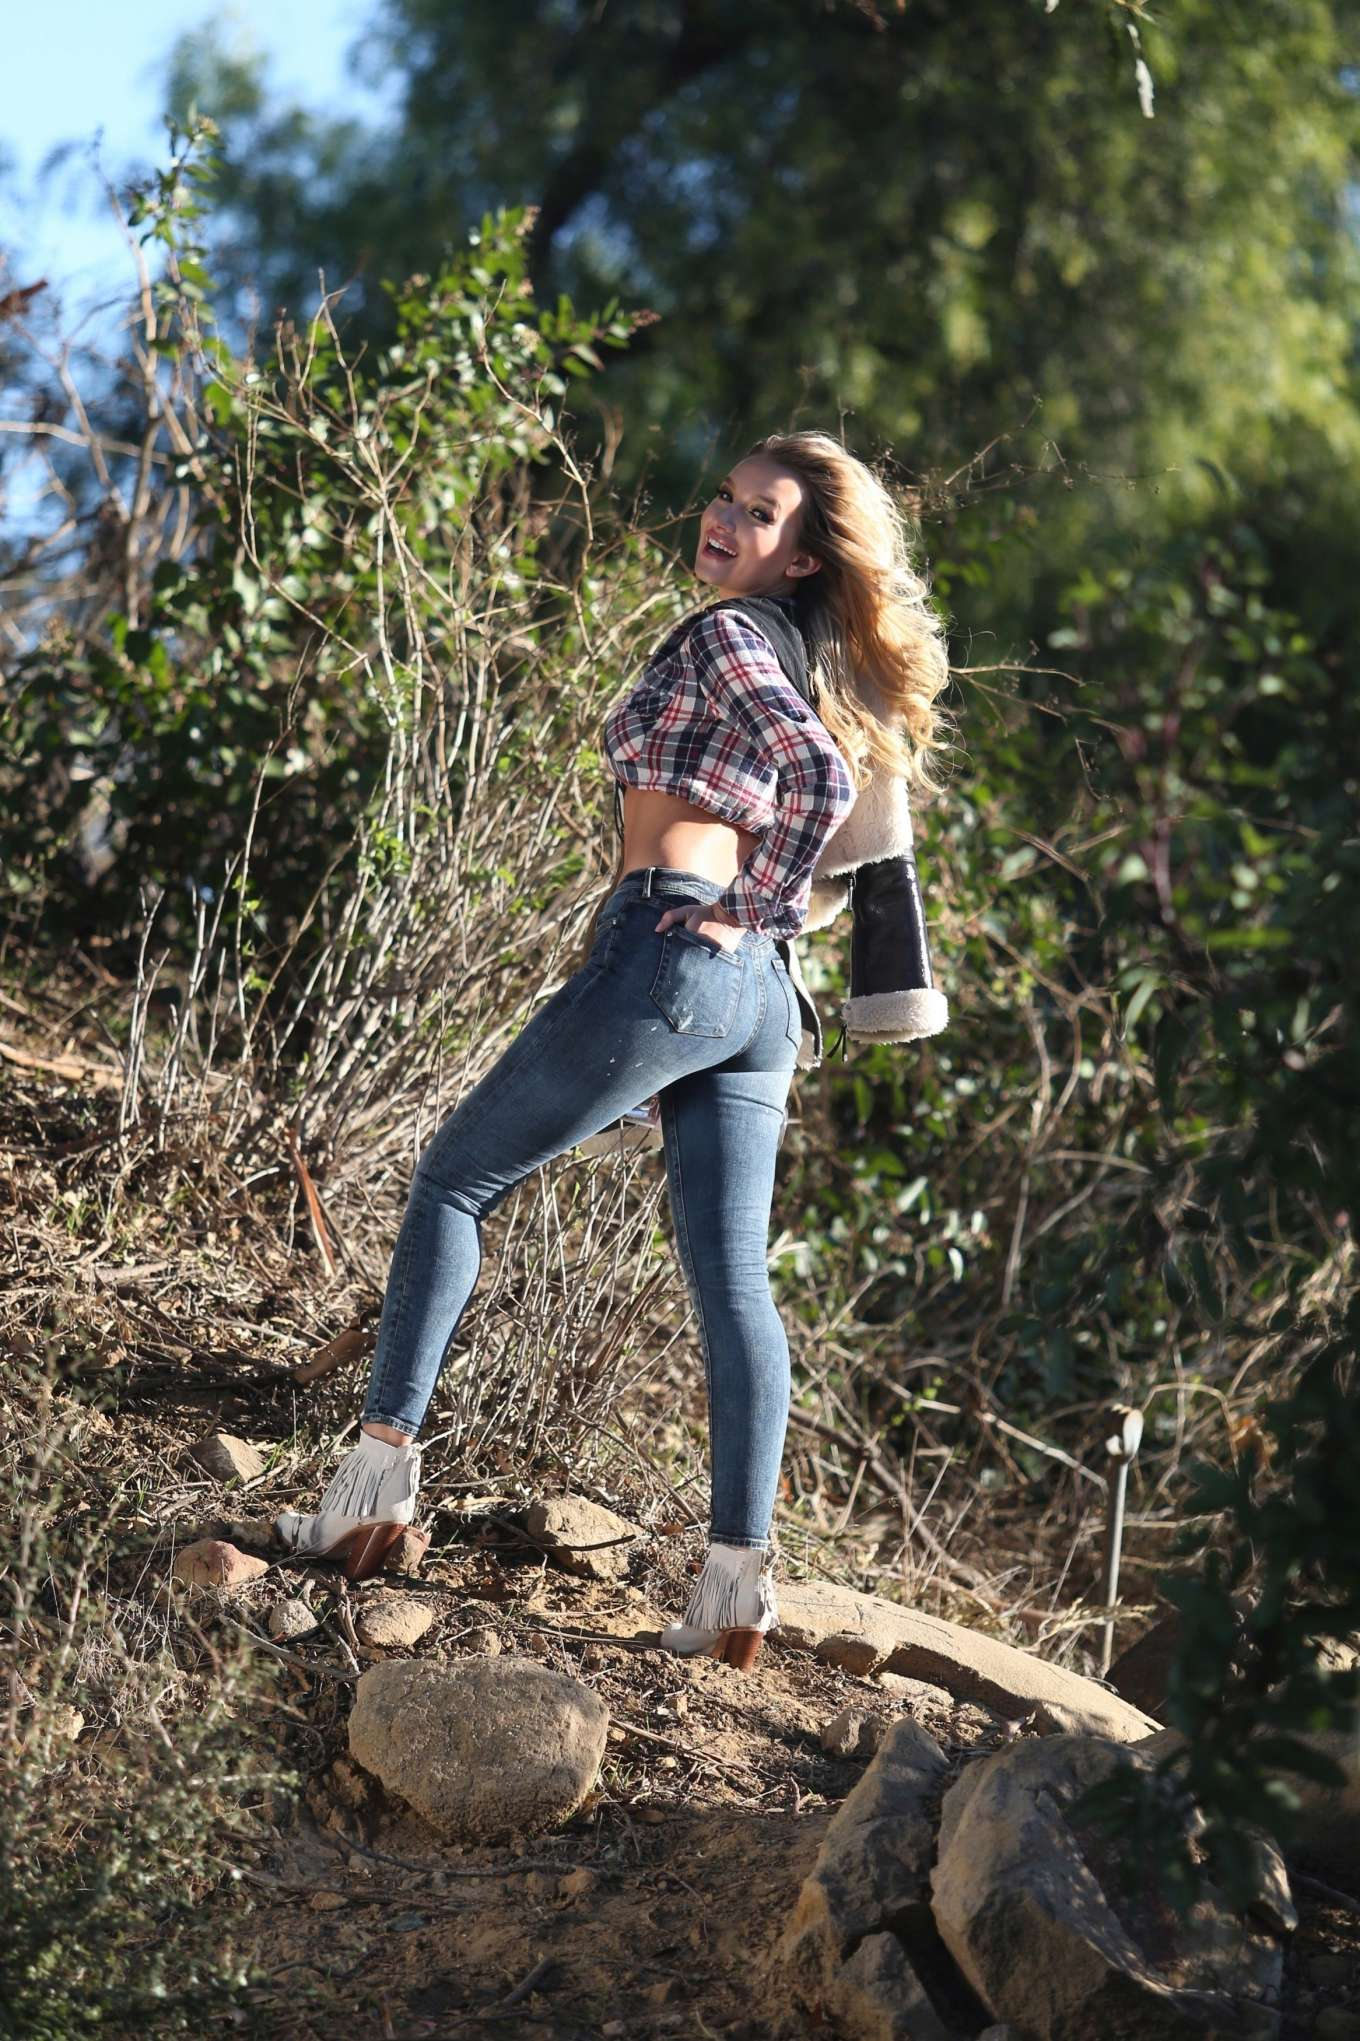 Trista Mikail – 138 Water Photoshoot in Bel-Air